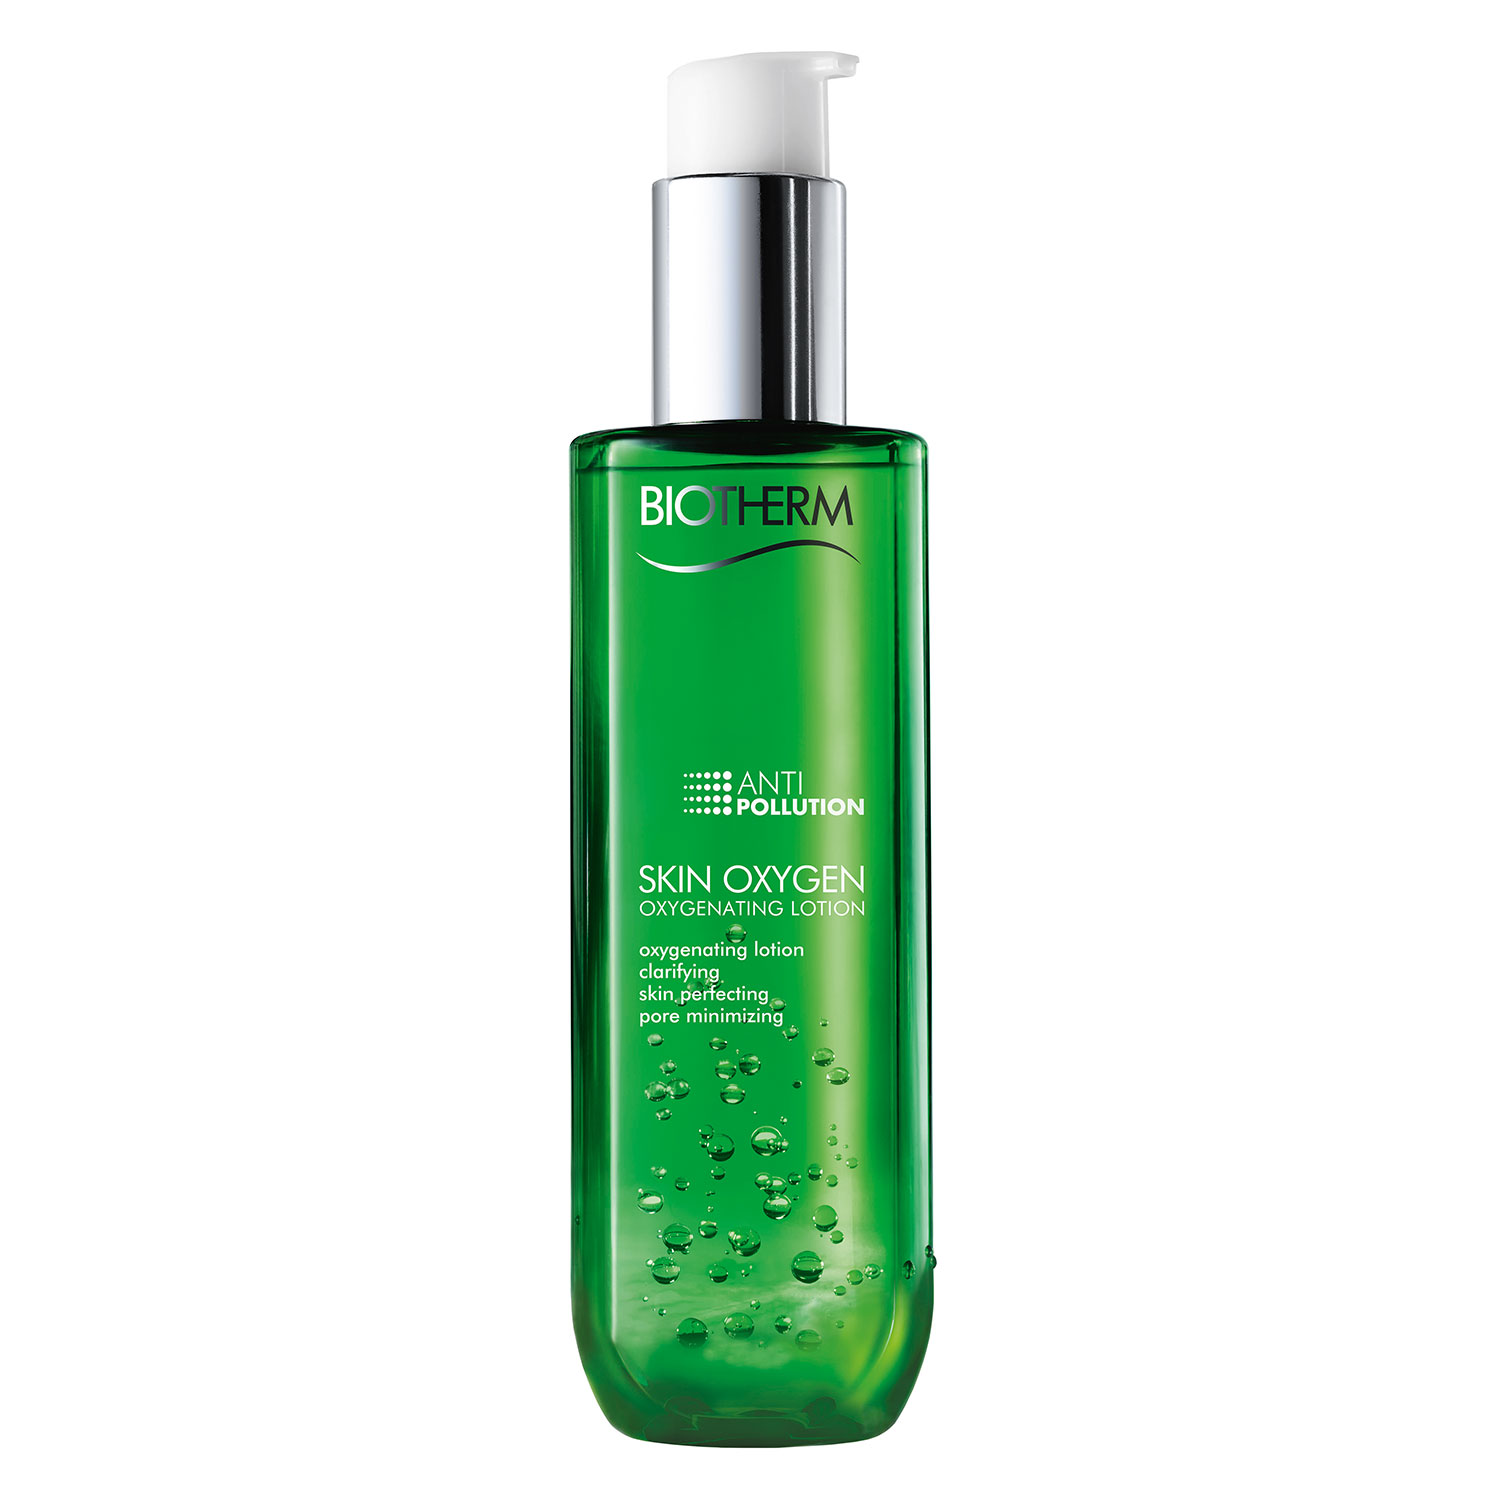 Skin Oxygen - Oxygenating Lotion - 200ml